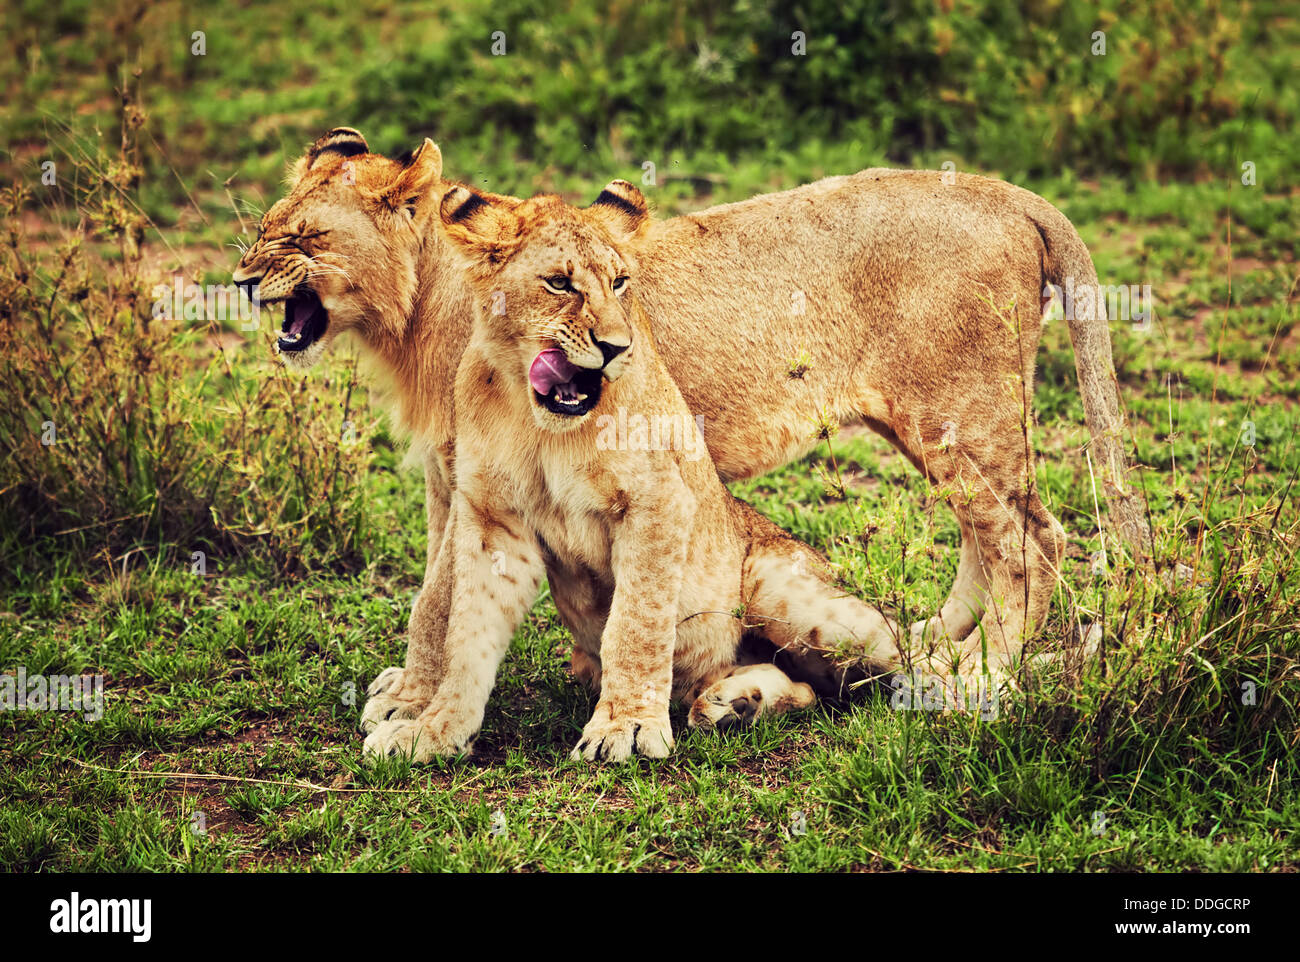 Small lion cubs playing in the Serengeti National Park, Tanzania, Africa - African wildlife - Stock Image